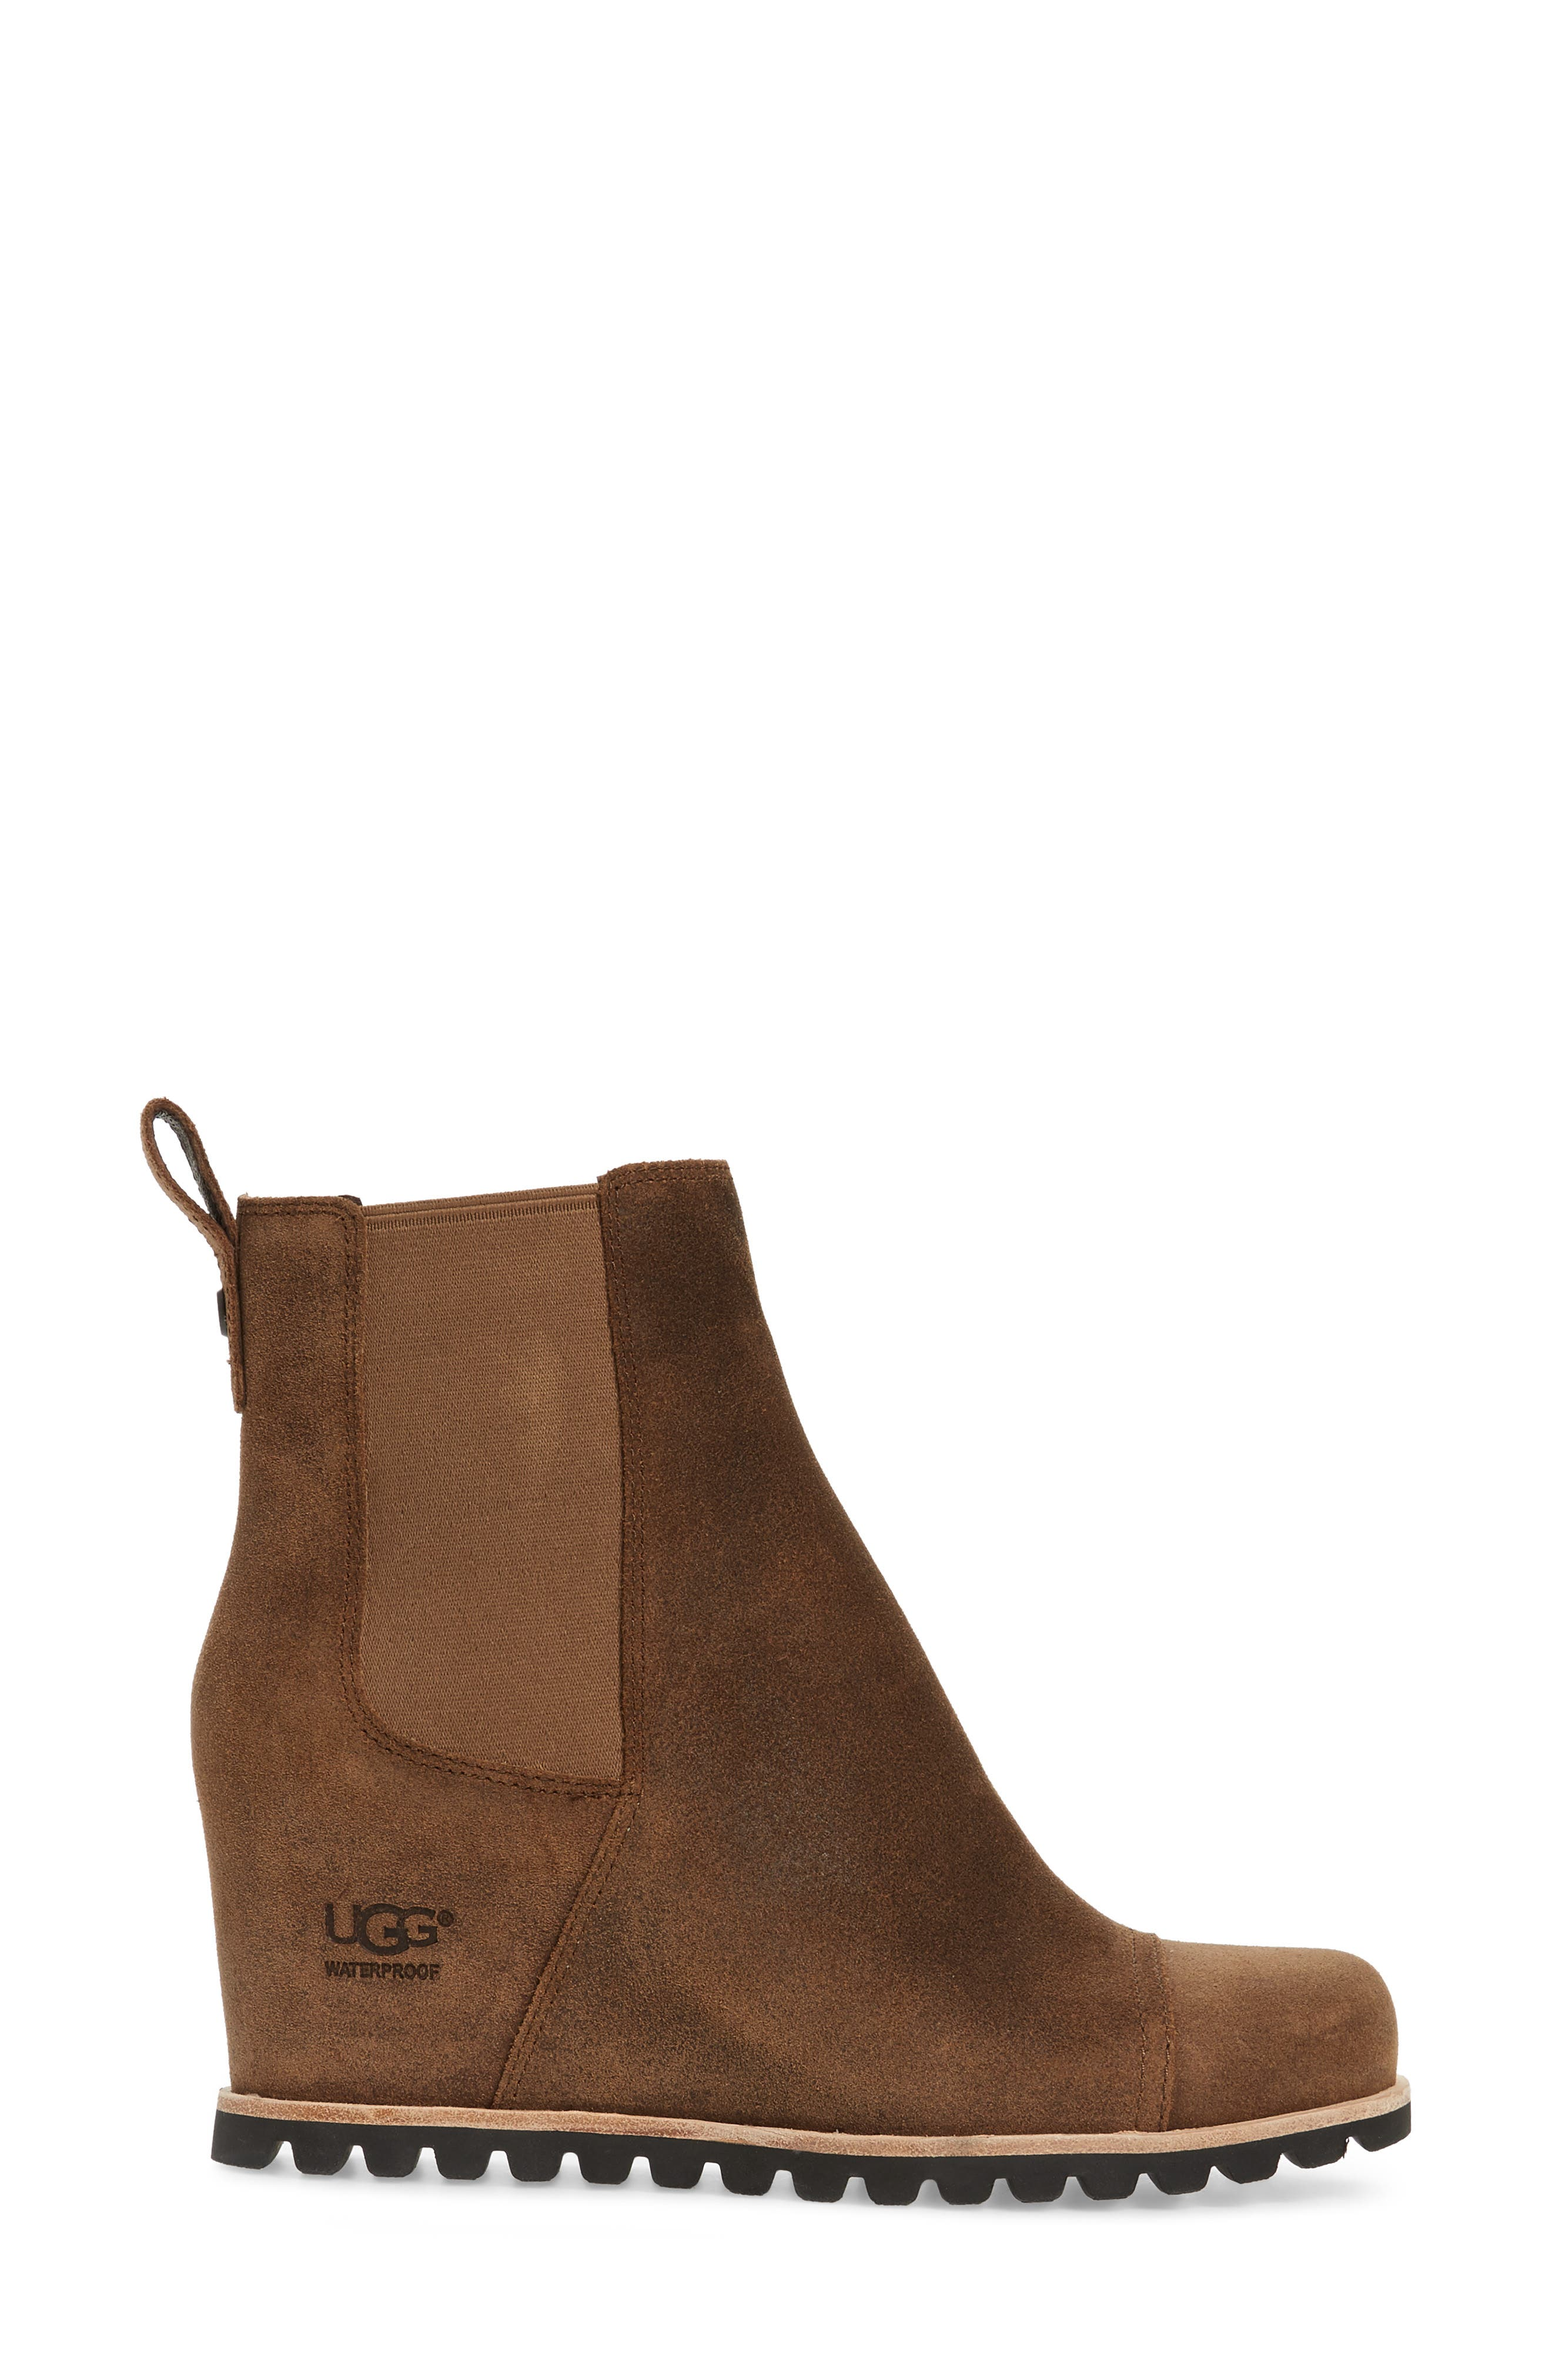 Pax Waterproof Wedge Boot,                             Alternate thumbnail 3, color,                             CHIPMUNK LEATHER